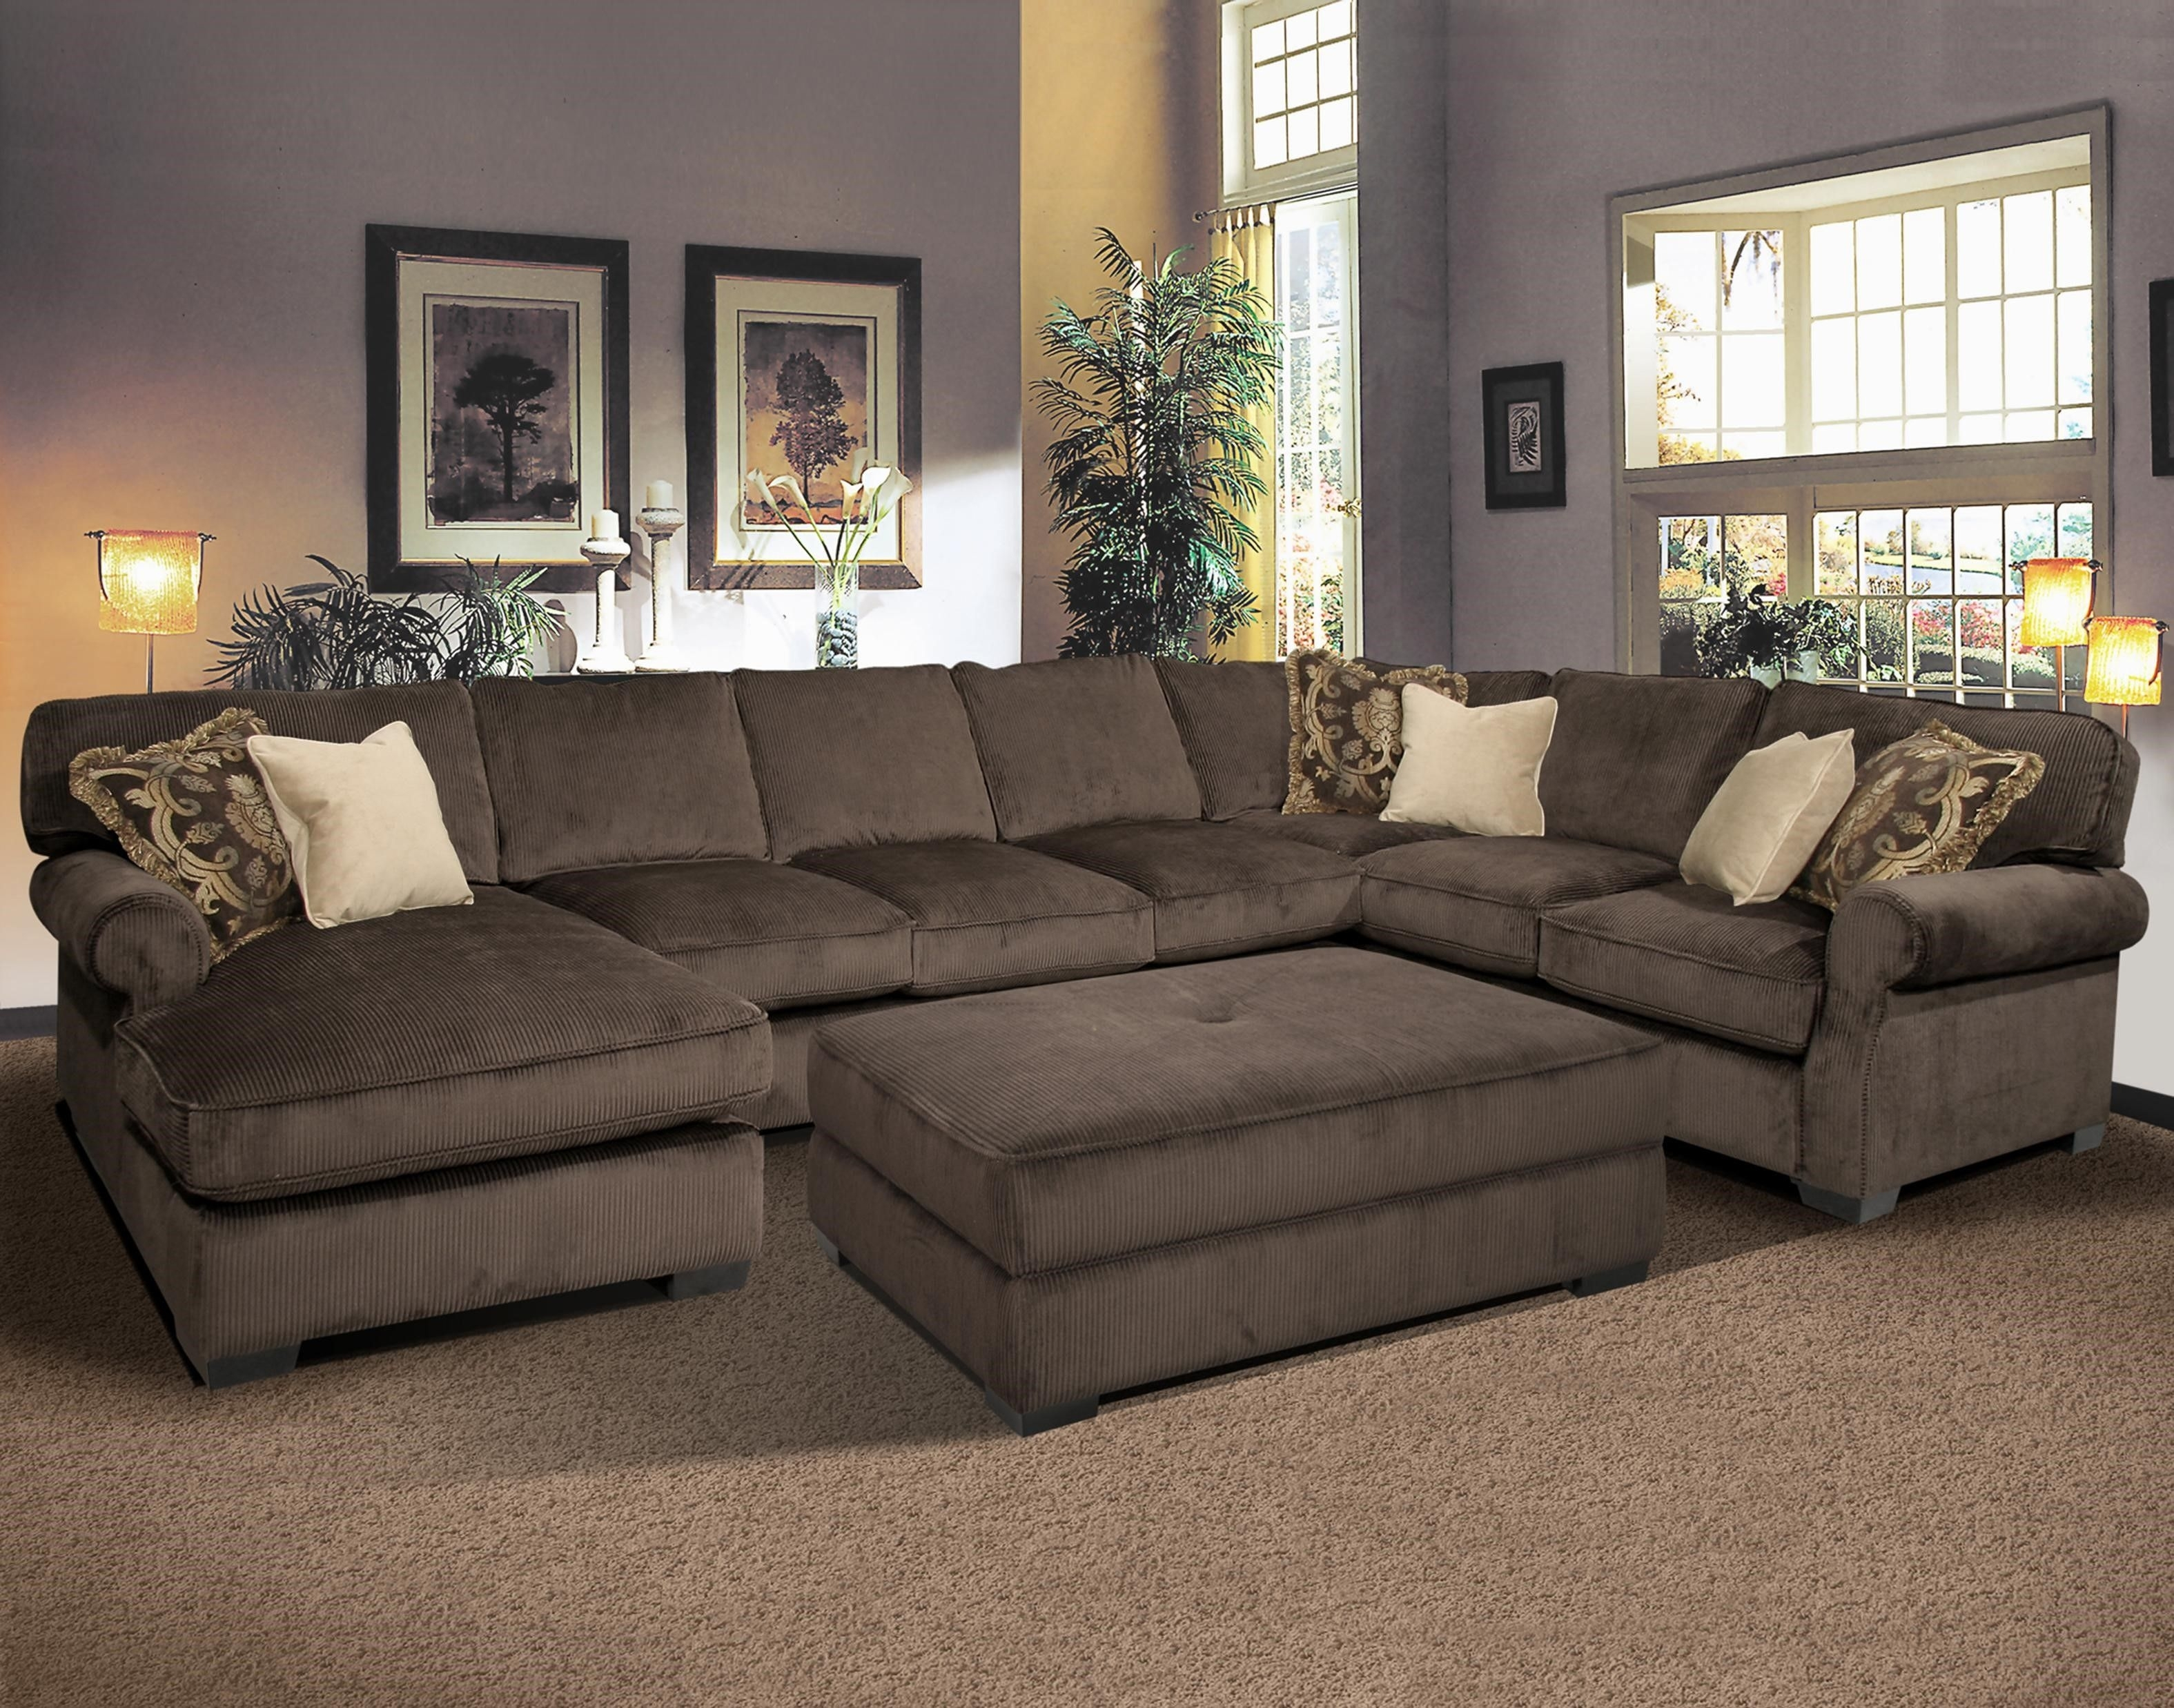 Comfortable Living Room Sofas Design With Elegant Overstuffed Pertaining To Goose Down Sectional Sofas (Image 2 of 10)